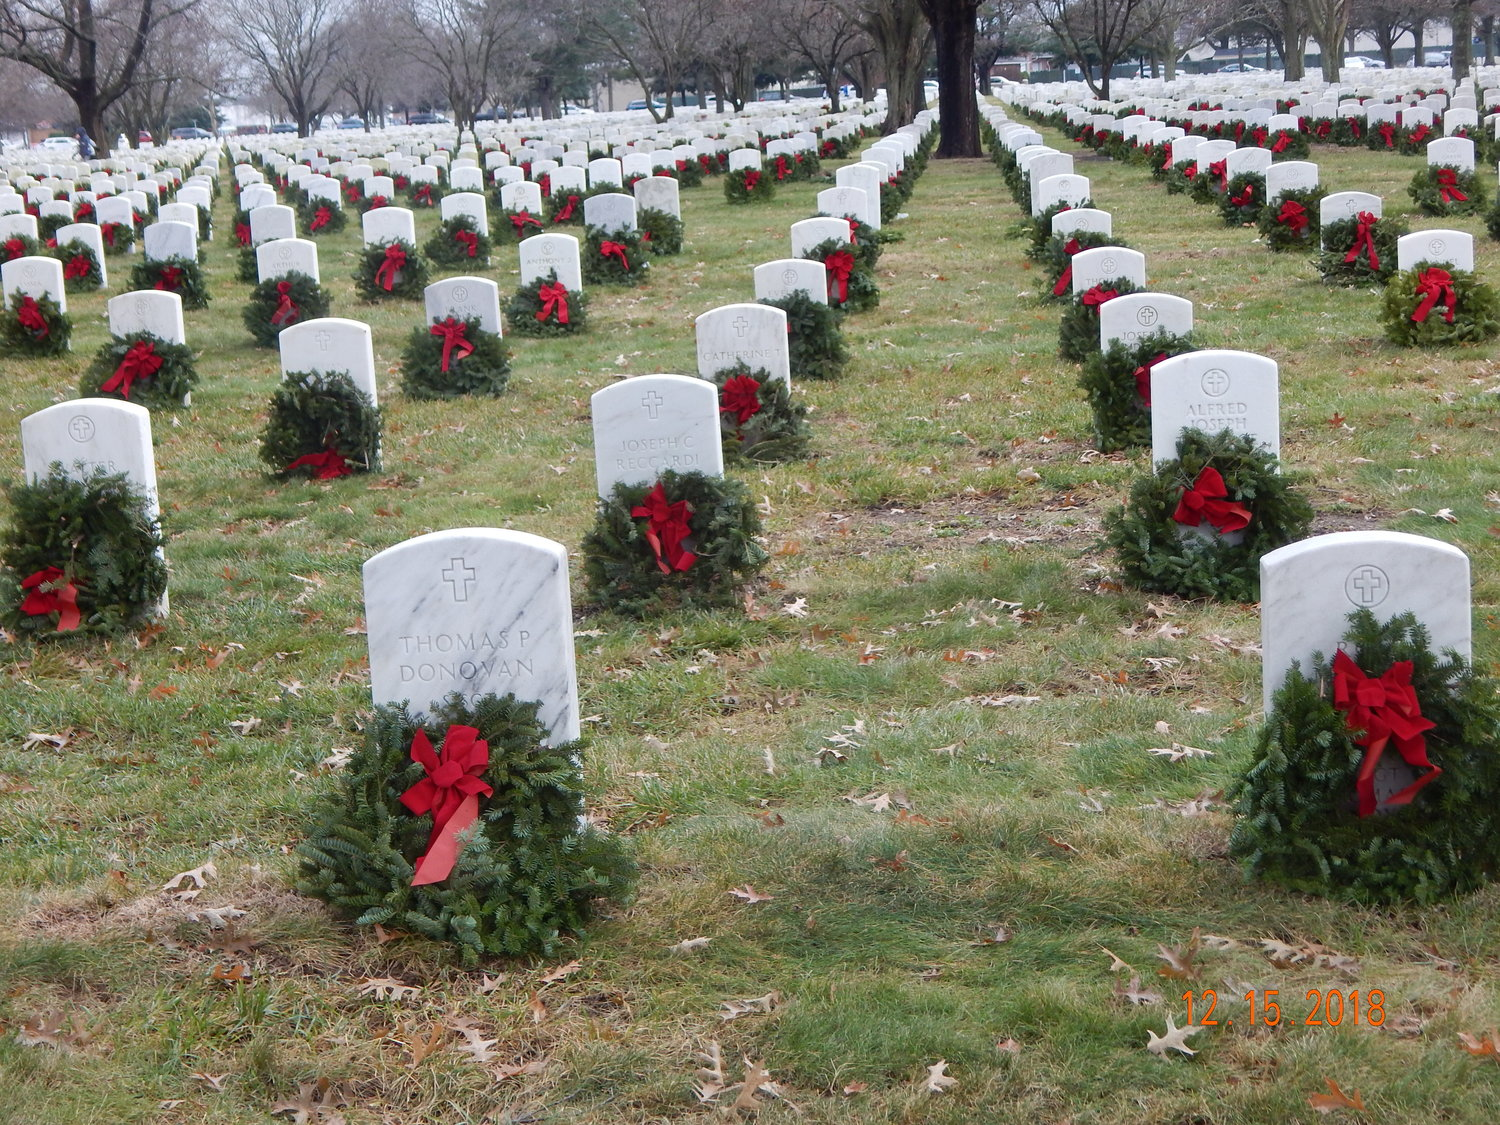 The teens and local volunteers helped place more than 2,000 wreaths at the tombstone of local veterans lying at the Long Island National Cemetery.